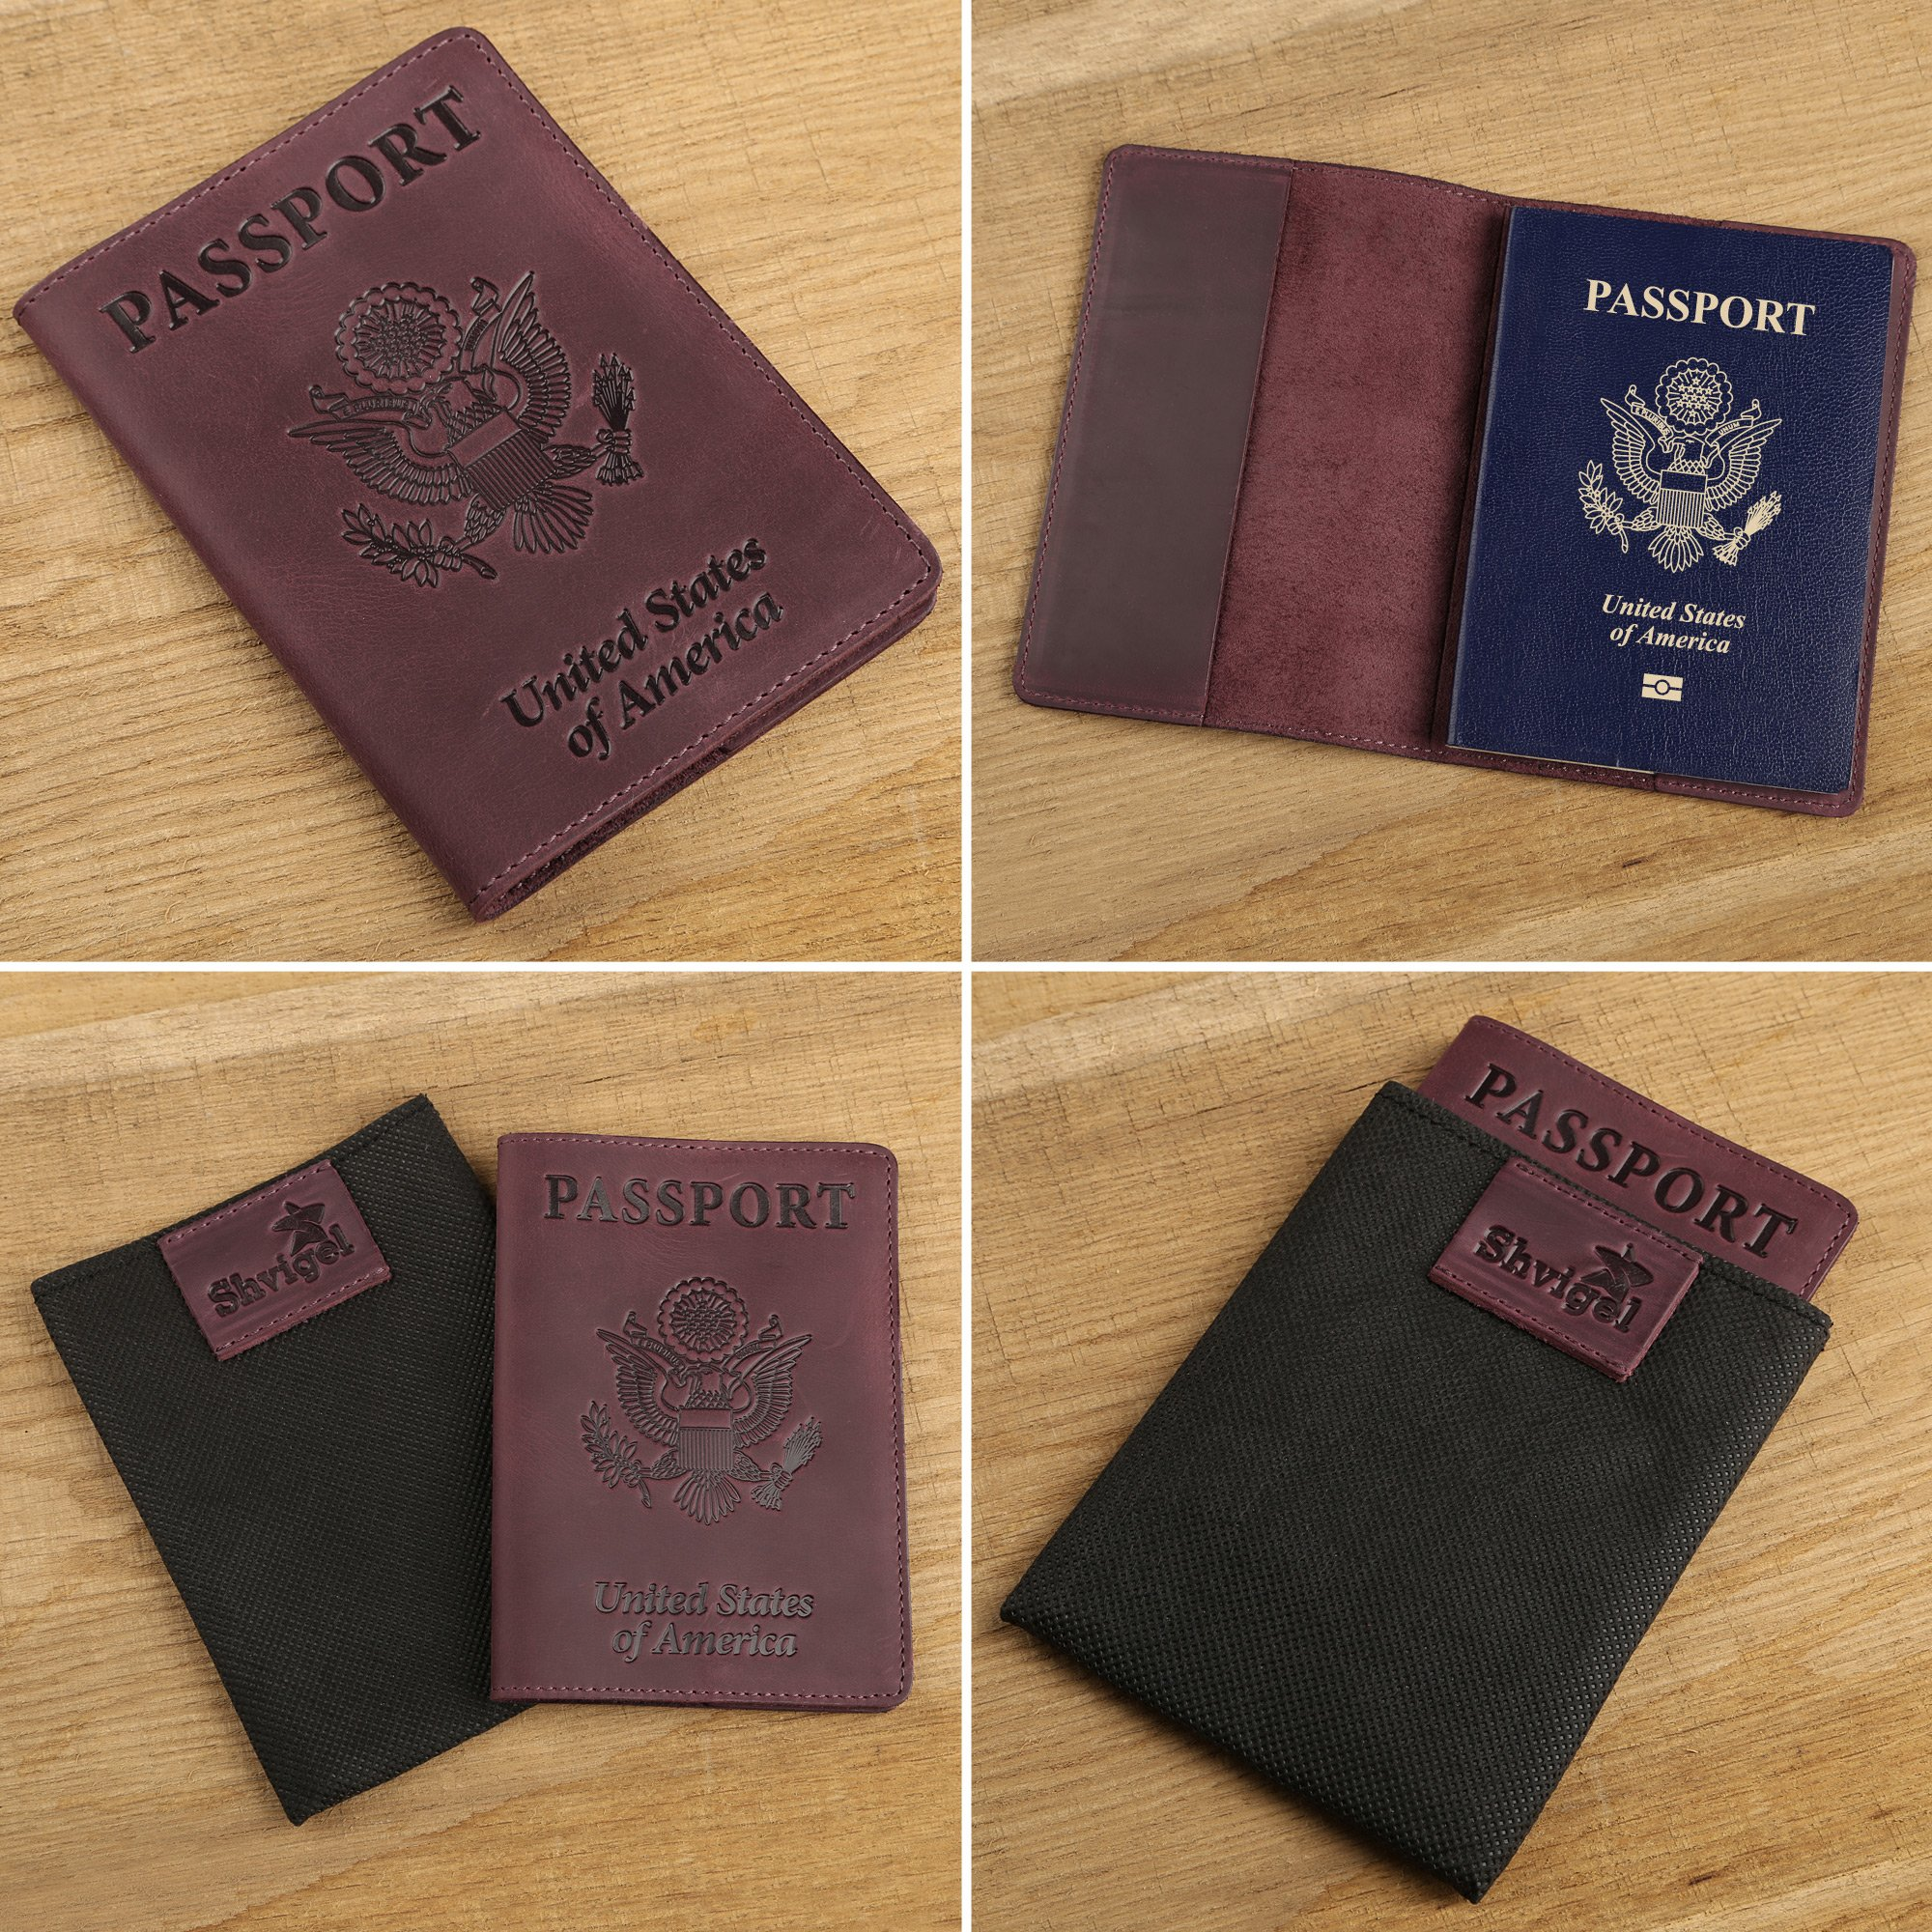 Shvigel Leather Passport Cover - Holder - for Men & Women - Passport Case (Maroon Vintage) by Shvigel (Image #5)